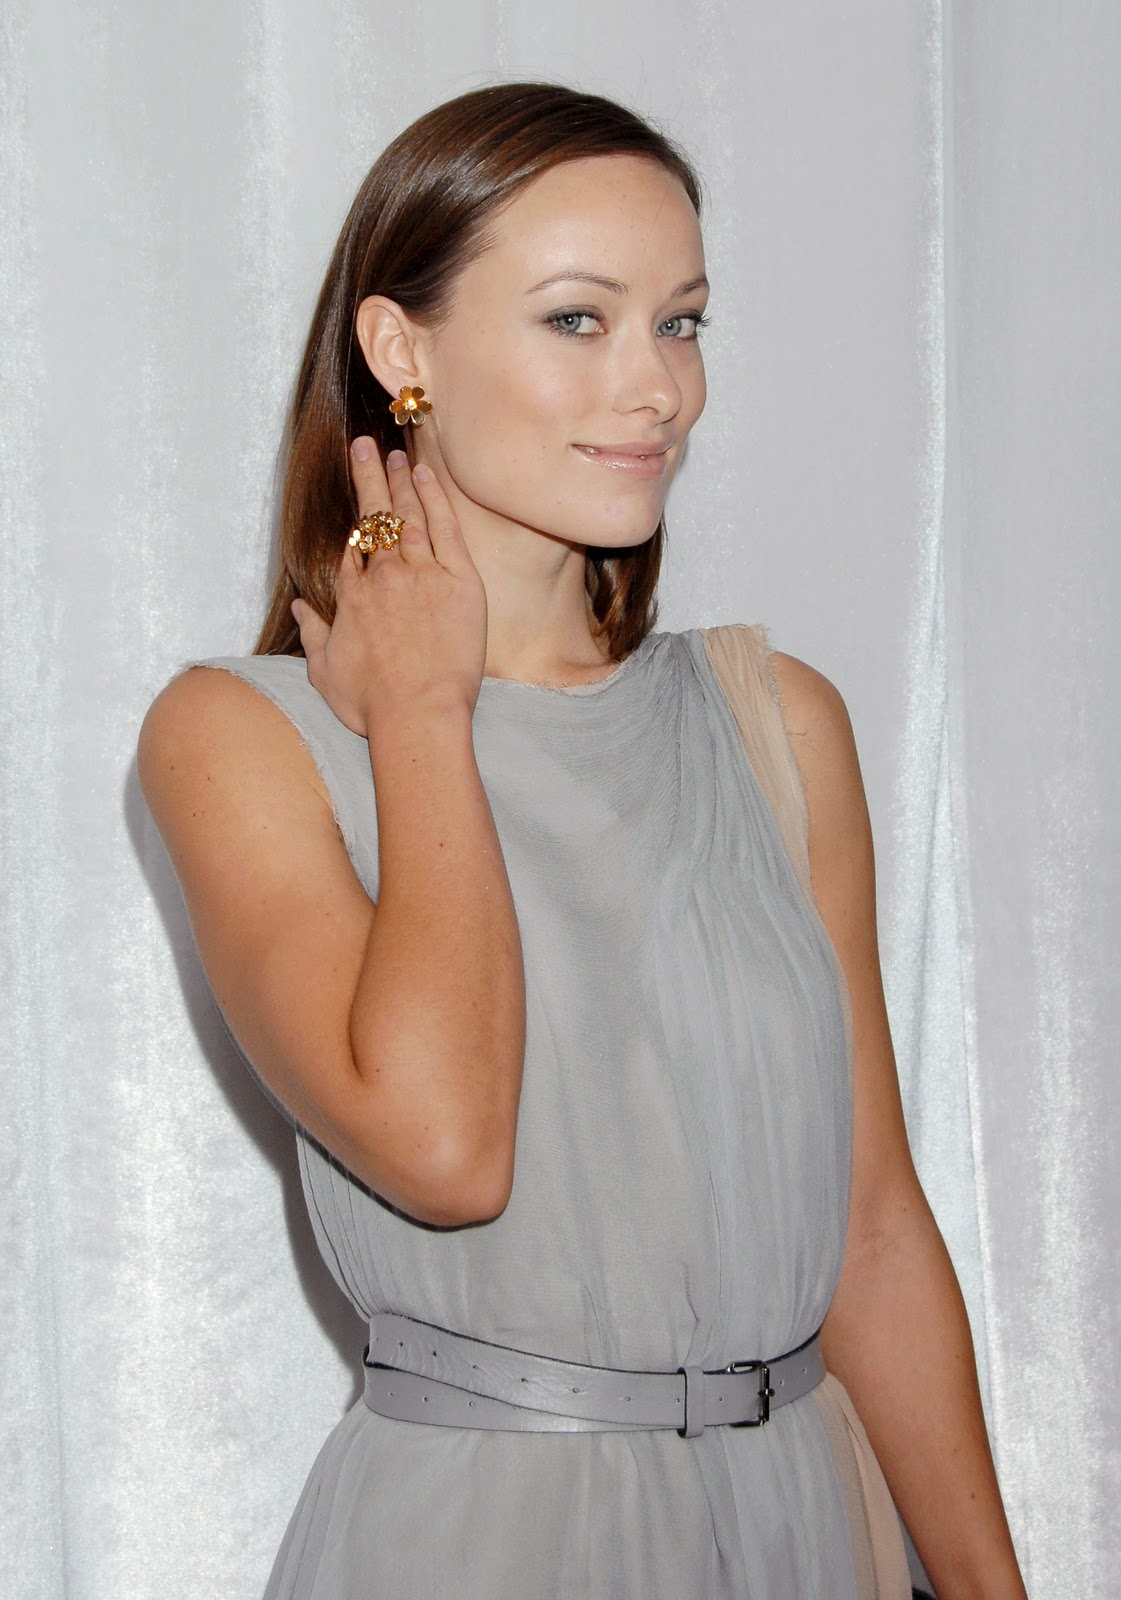 Olivia Wilde Profile And New Pictures 2013: Olivia Wilde Special Pictures (13)